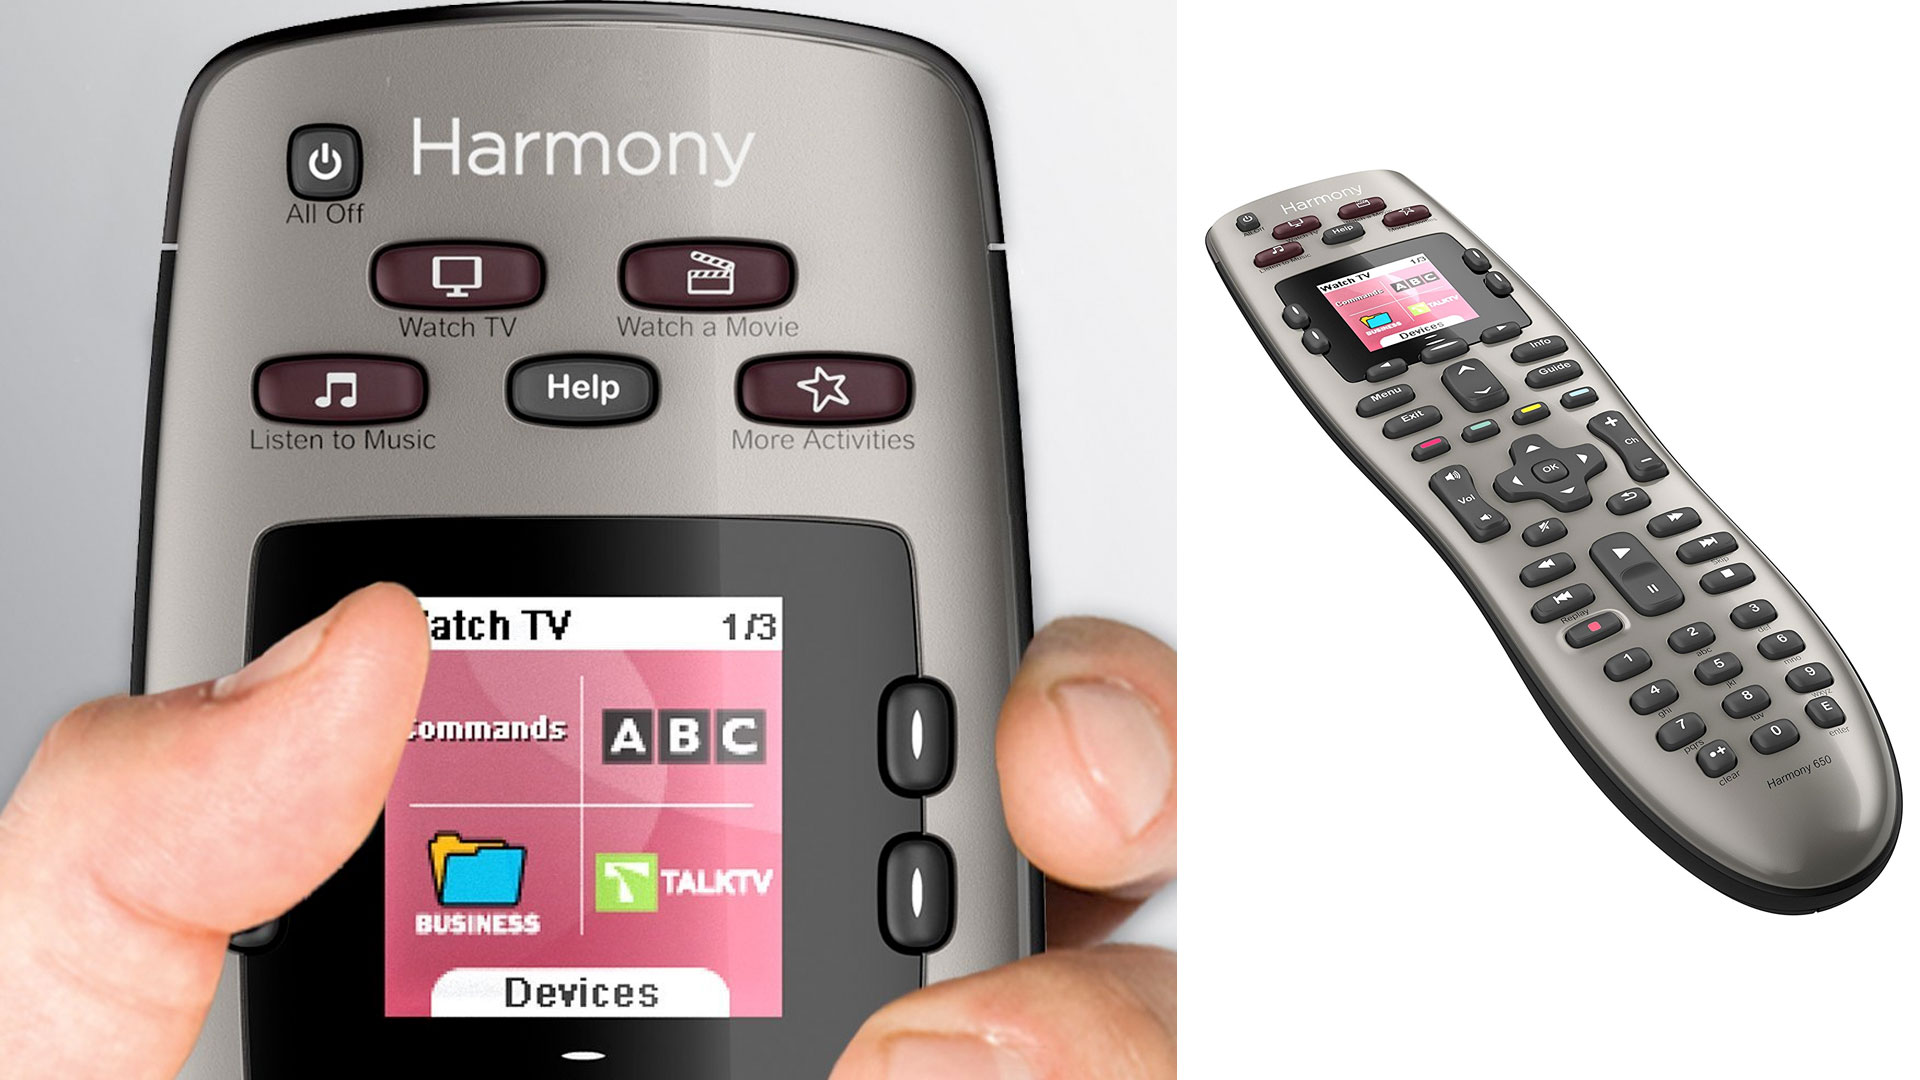 Turn 8 remotes into 1 w/ Logitech's Harmony 650 universal remote for $30 (Reg. $40+)